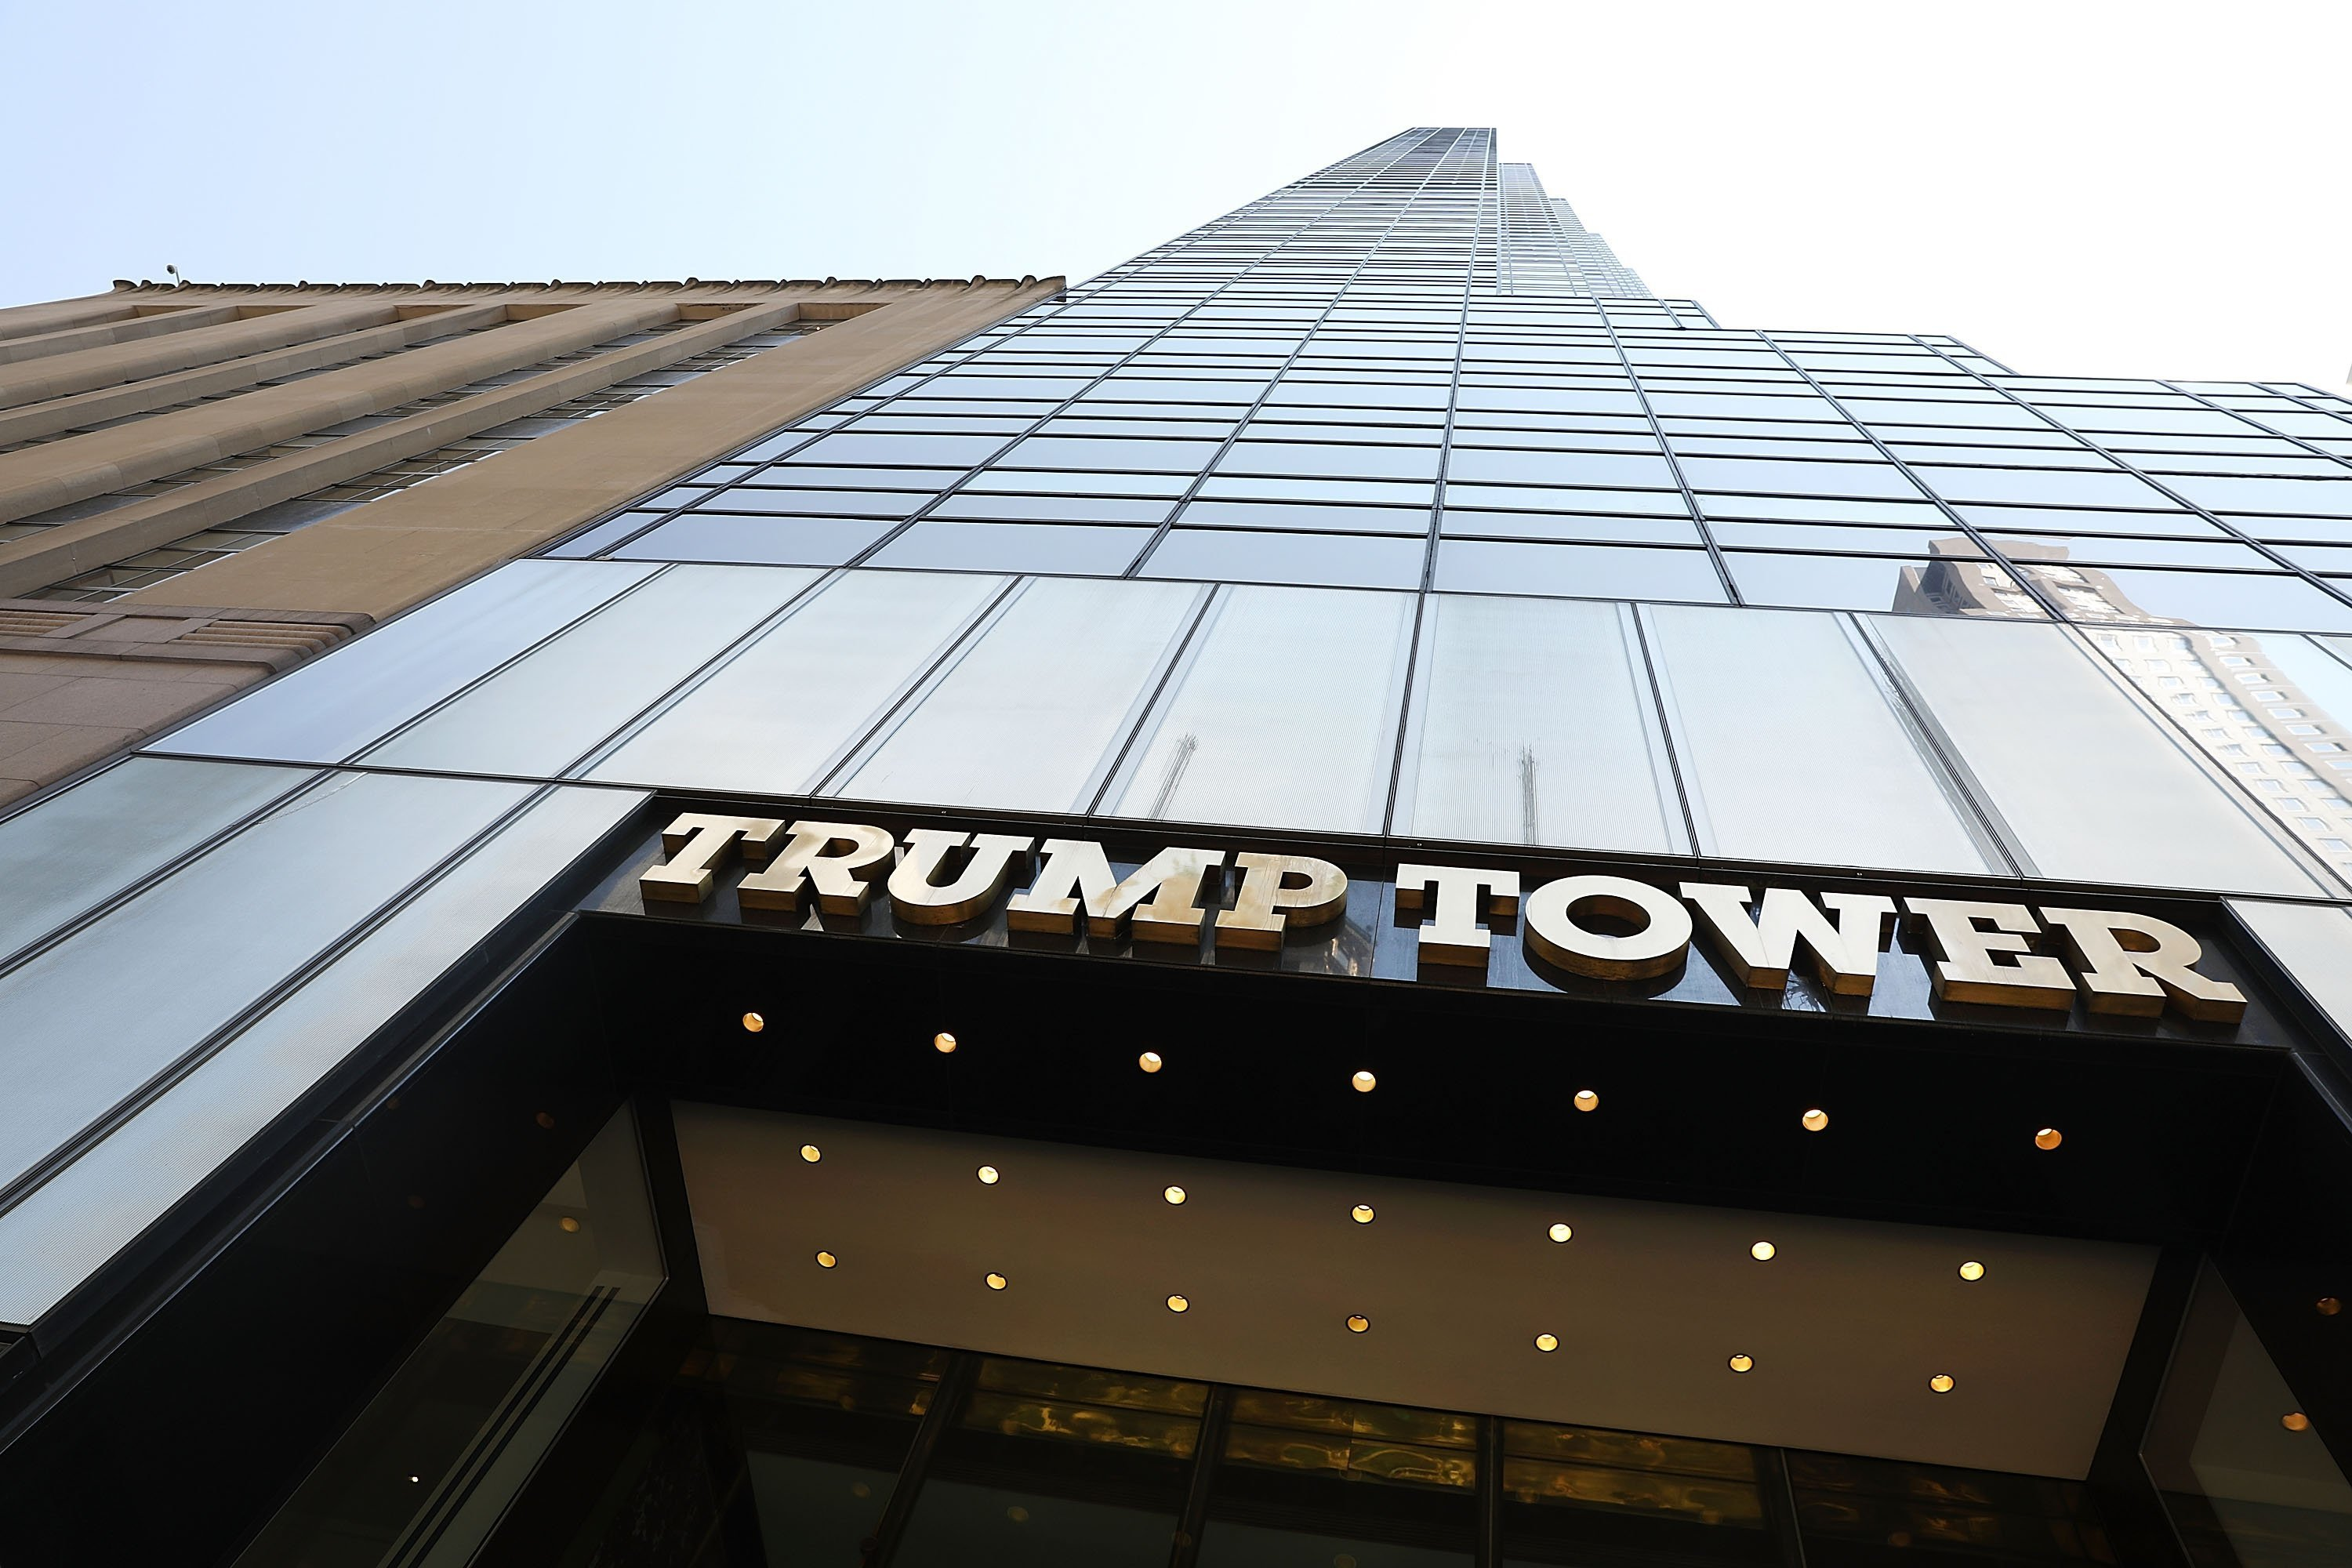 The Senate Judiciary Committee on Wednesday released nearly 2,000 pages of transcripts from interviews the panel conducted with Donald Trump Jr. and other participants of a June 2016 Trump Tower meeting.